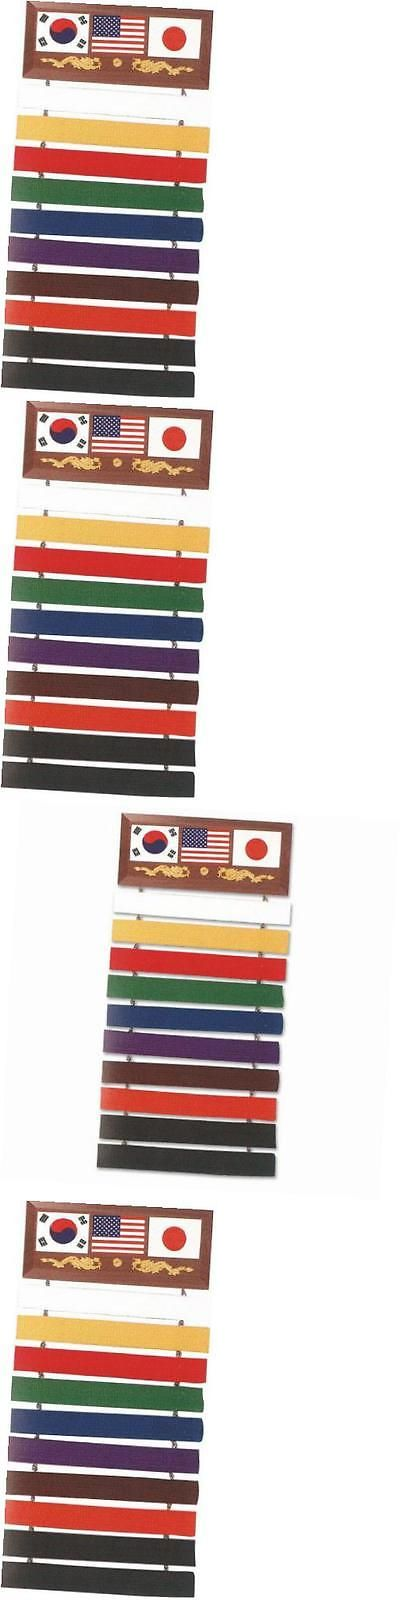 Belt Displays 179768: Se-007 10 Karate Belt Display Wood Rack -> BUY IT NOW ONLY: $31.14 on eBay!